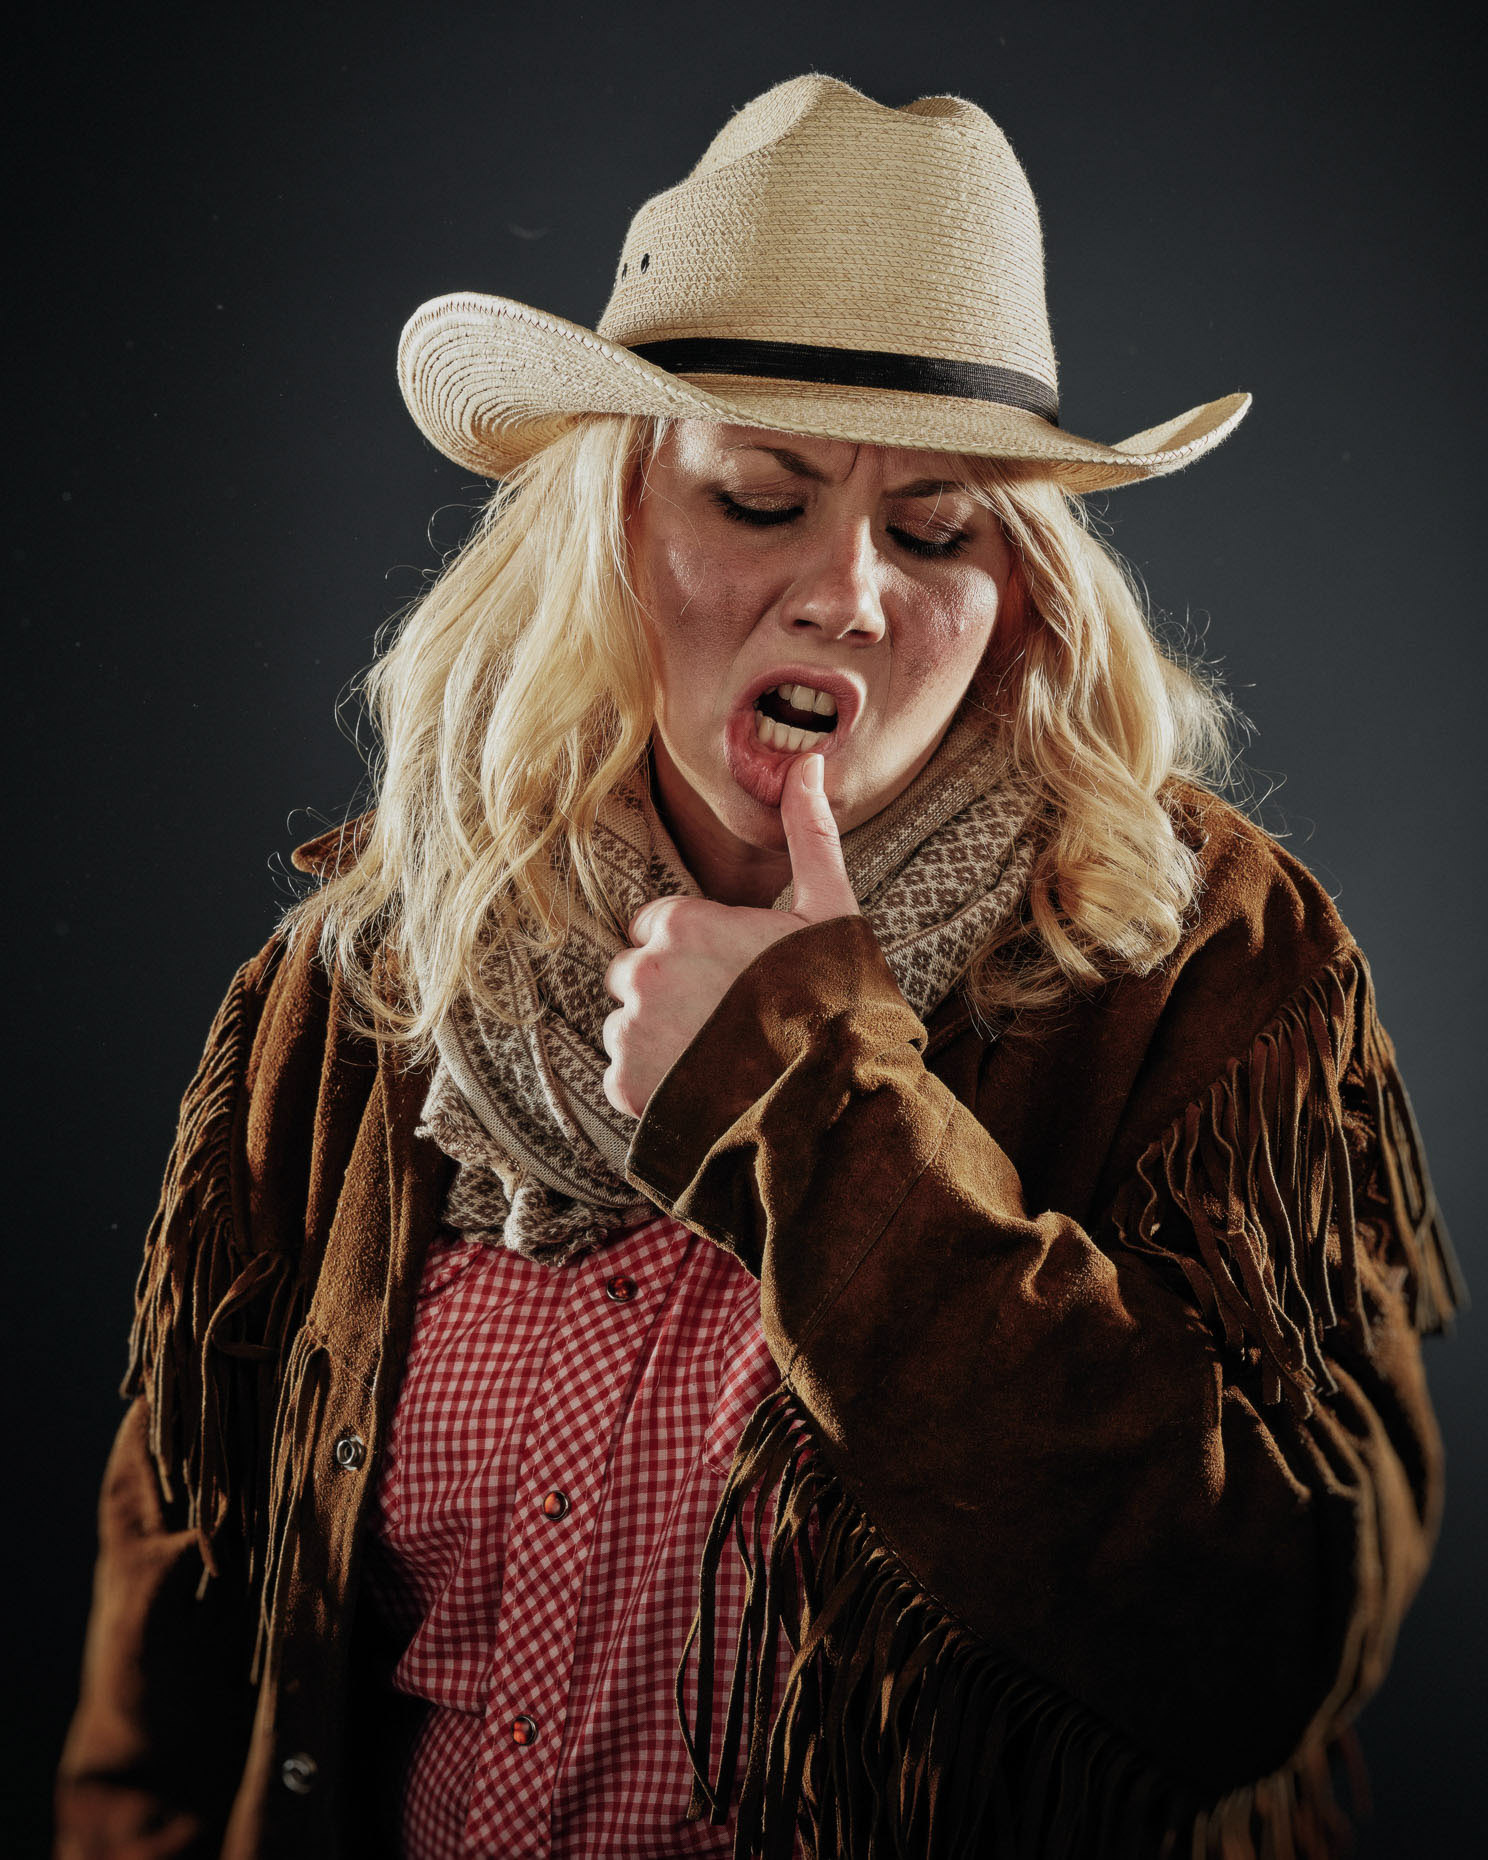 In studio character portrait of improv actor Hallie Zmroczek Curious Comedy Theater Showdown, dressed as a cowboy in a white hat. Photo by Andy Batt